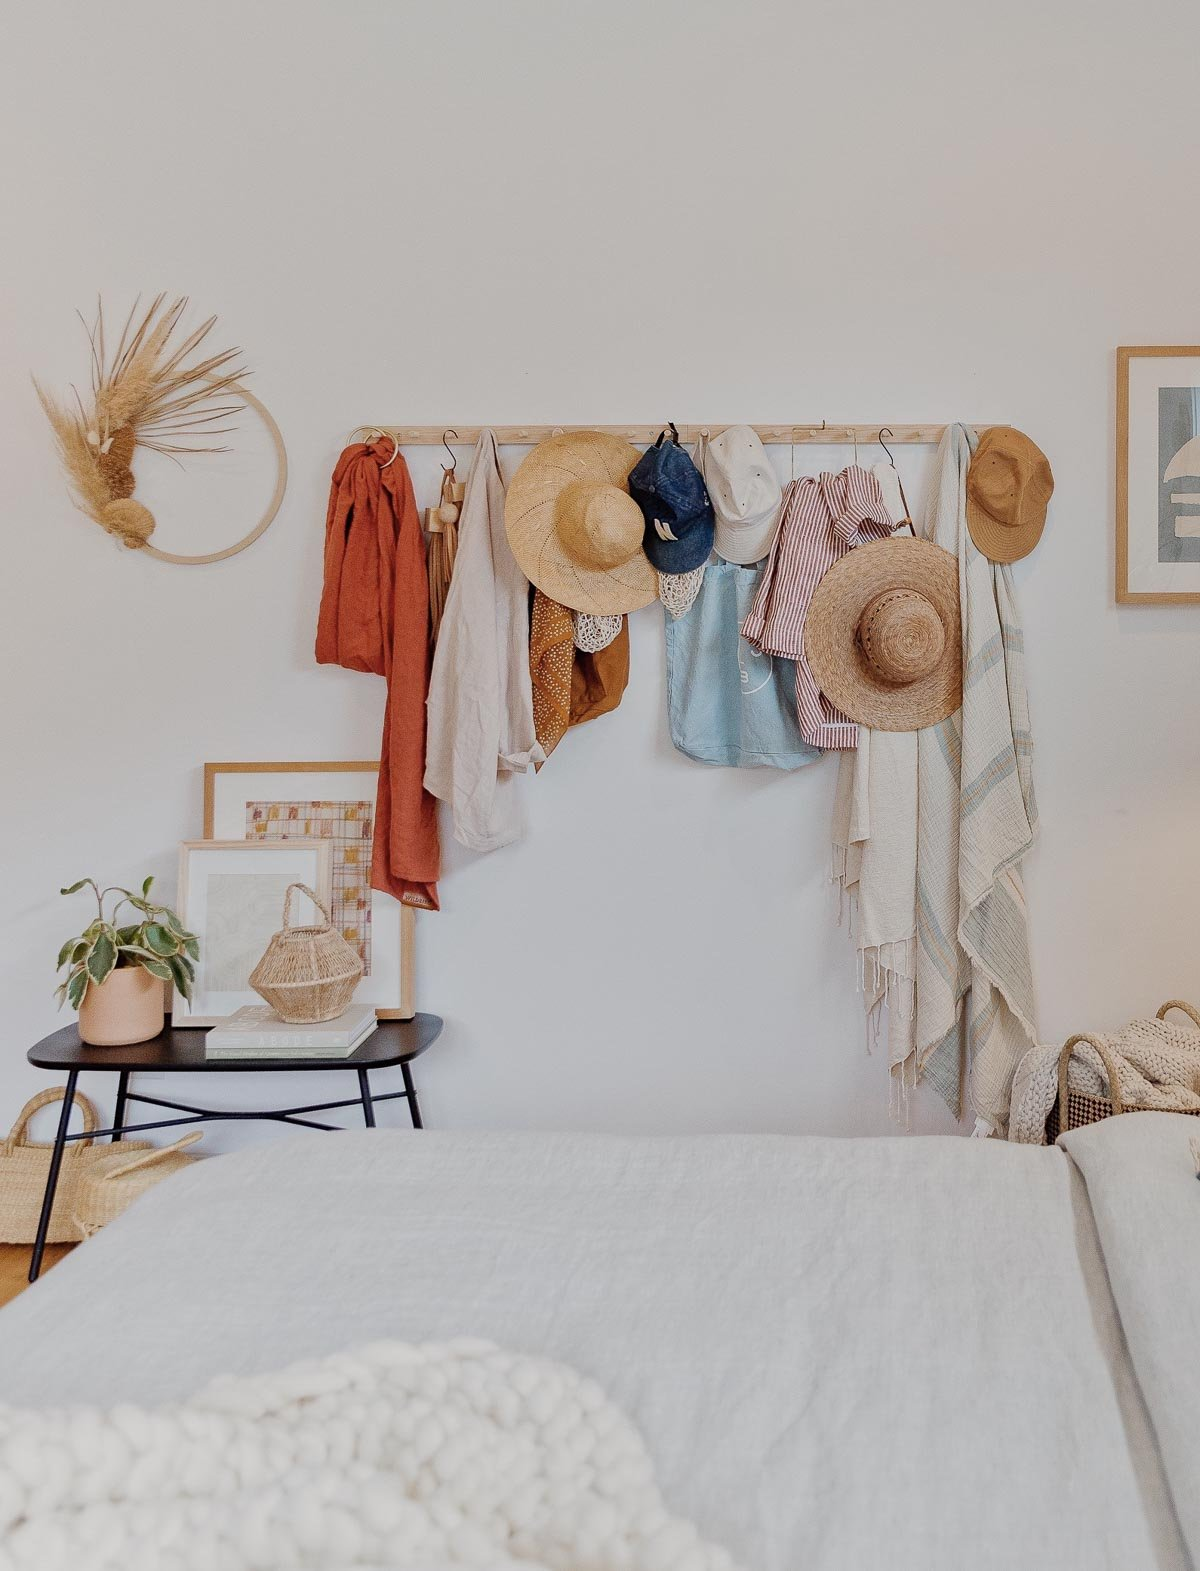 A wood peg rail hangs on a white wall with hats, scarves, and bags.